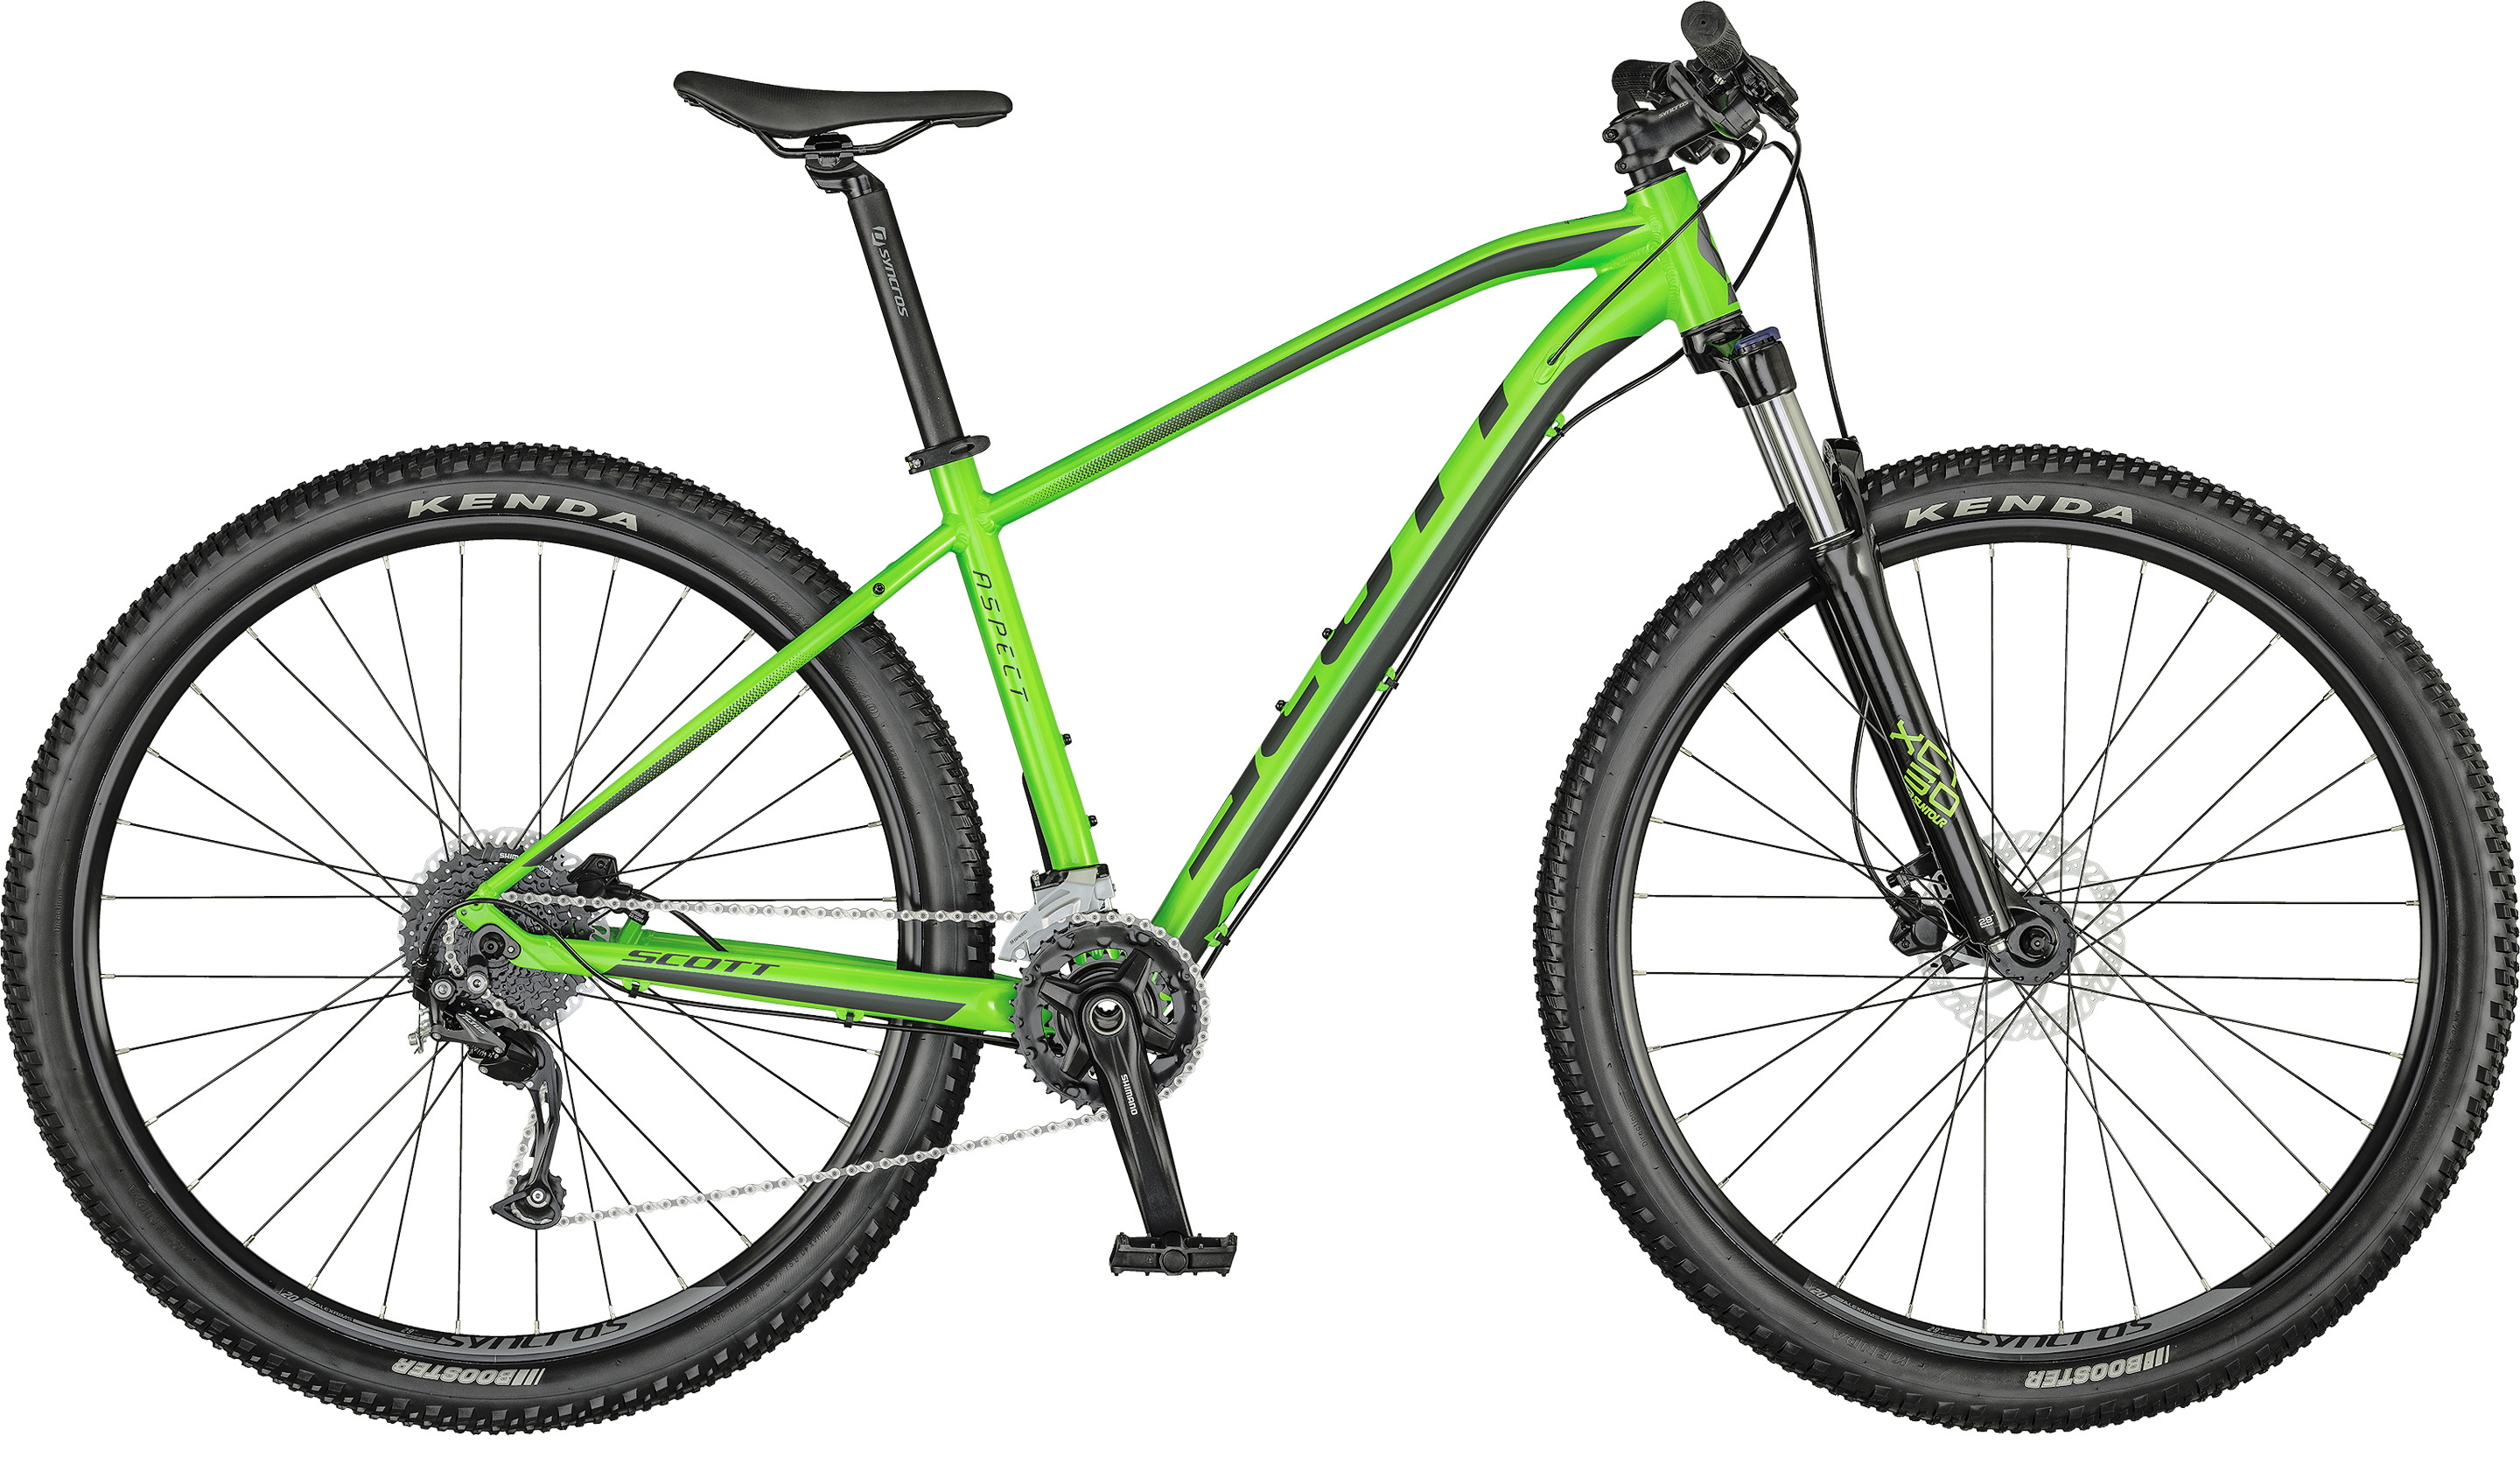 Aspect 950 smith green | Culture Vélo